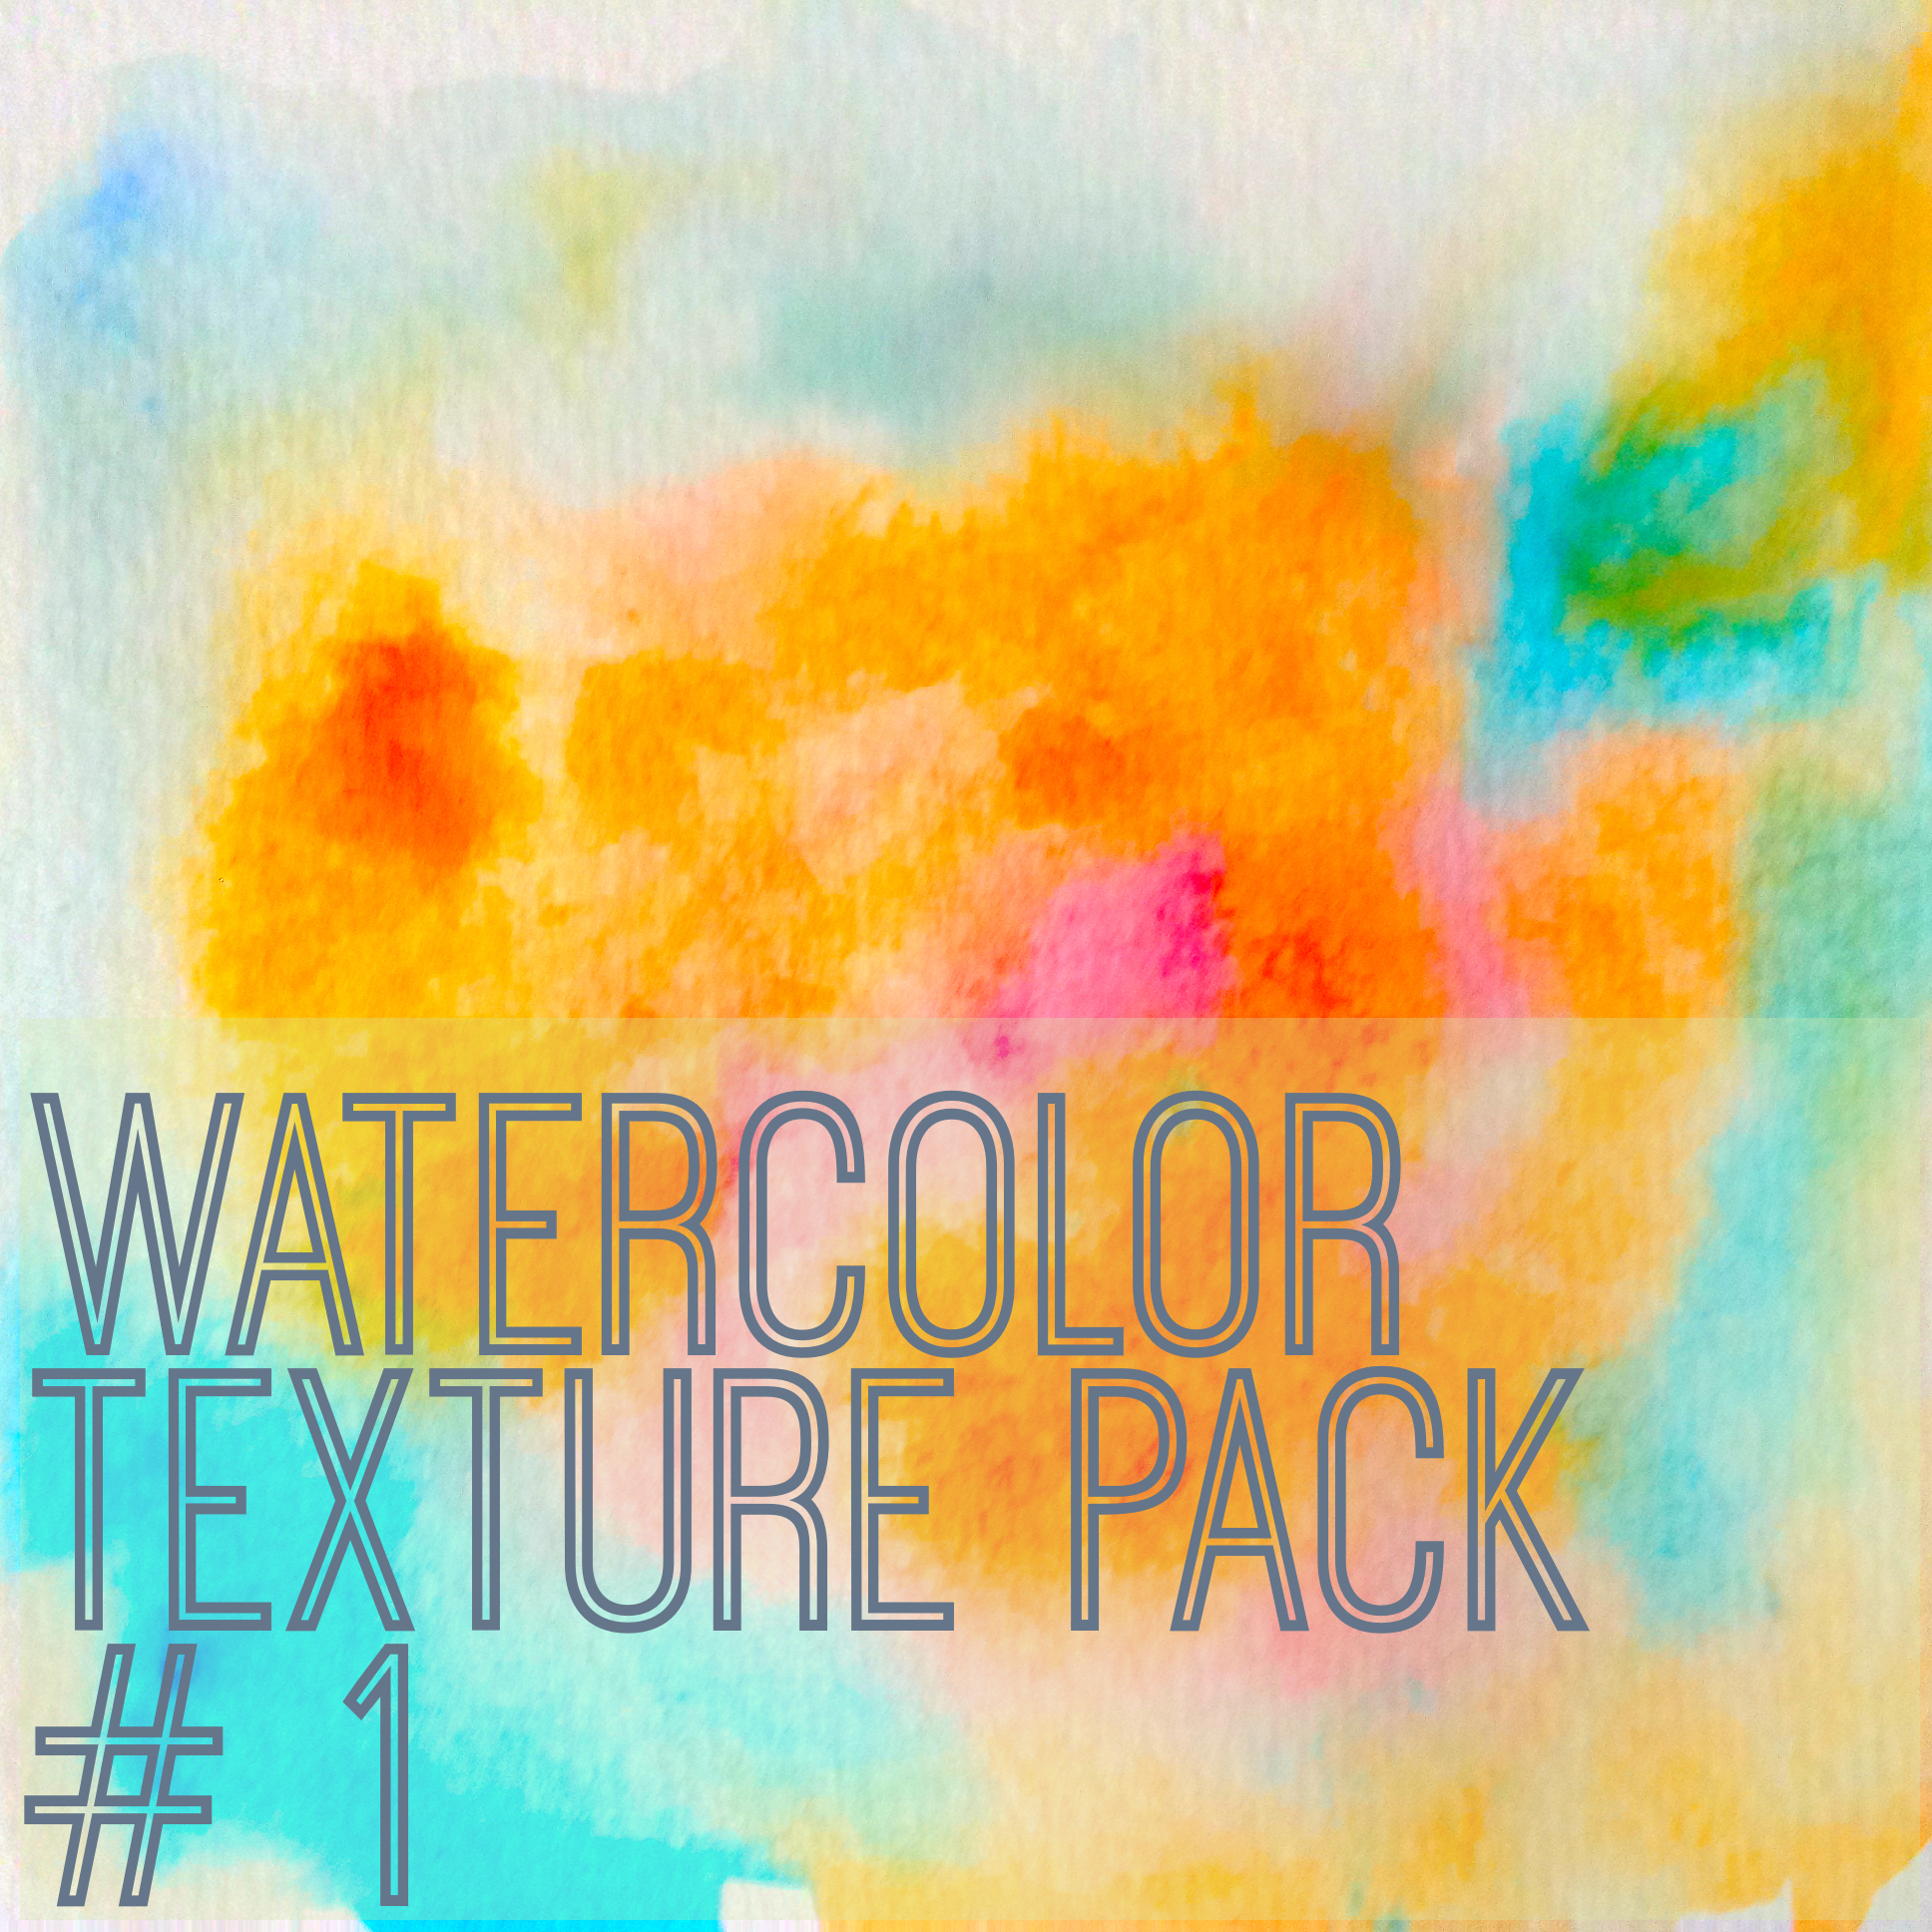 Watercolor Texture Pack # 1